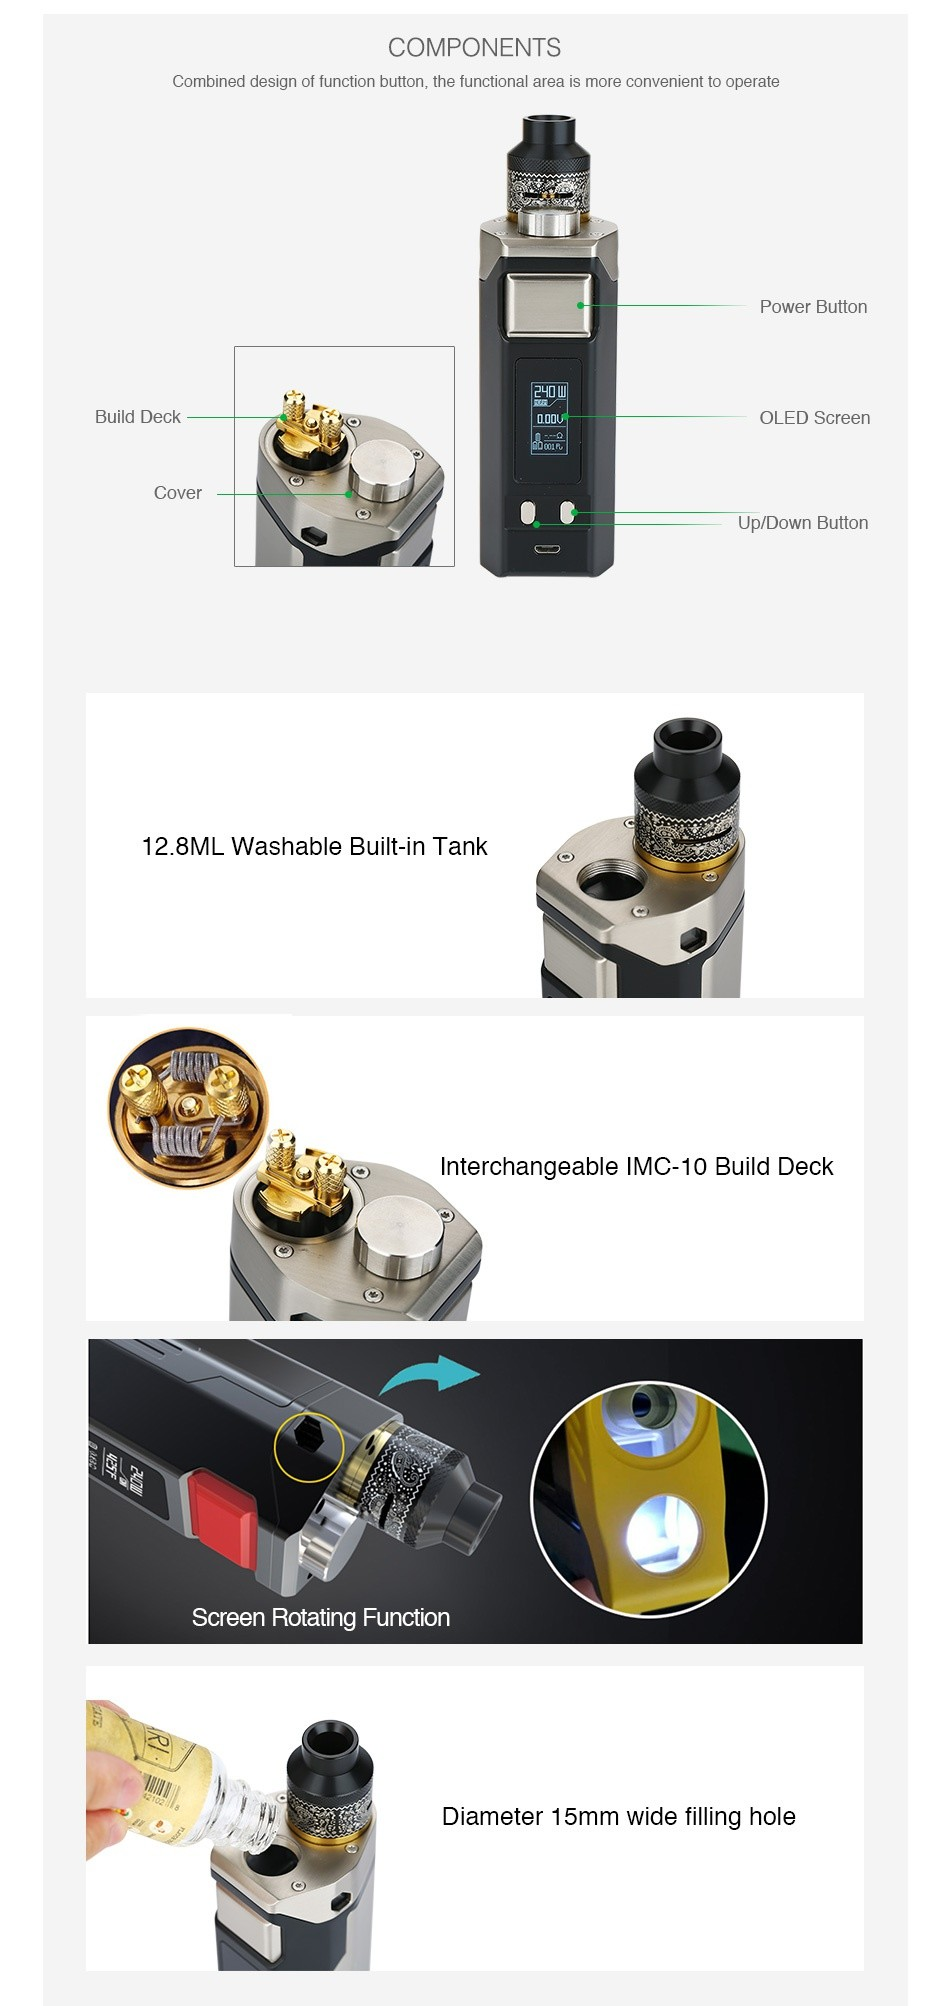 IJOY RDTA BOX Triple 240W TC Kit COMPONENTS Combined design of function button  the functional area is more convenient to operate Power Button   Build deck OLED Screen Cover Up Down Button 12 8M Washable built in tank Interchangeable IMC 10 Build deck Screen Rotating Function Diameter 1 5mm wide filling hole